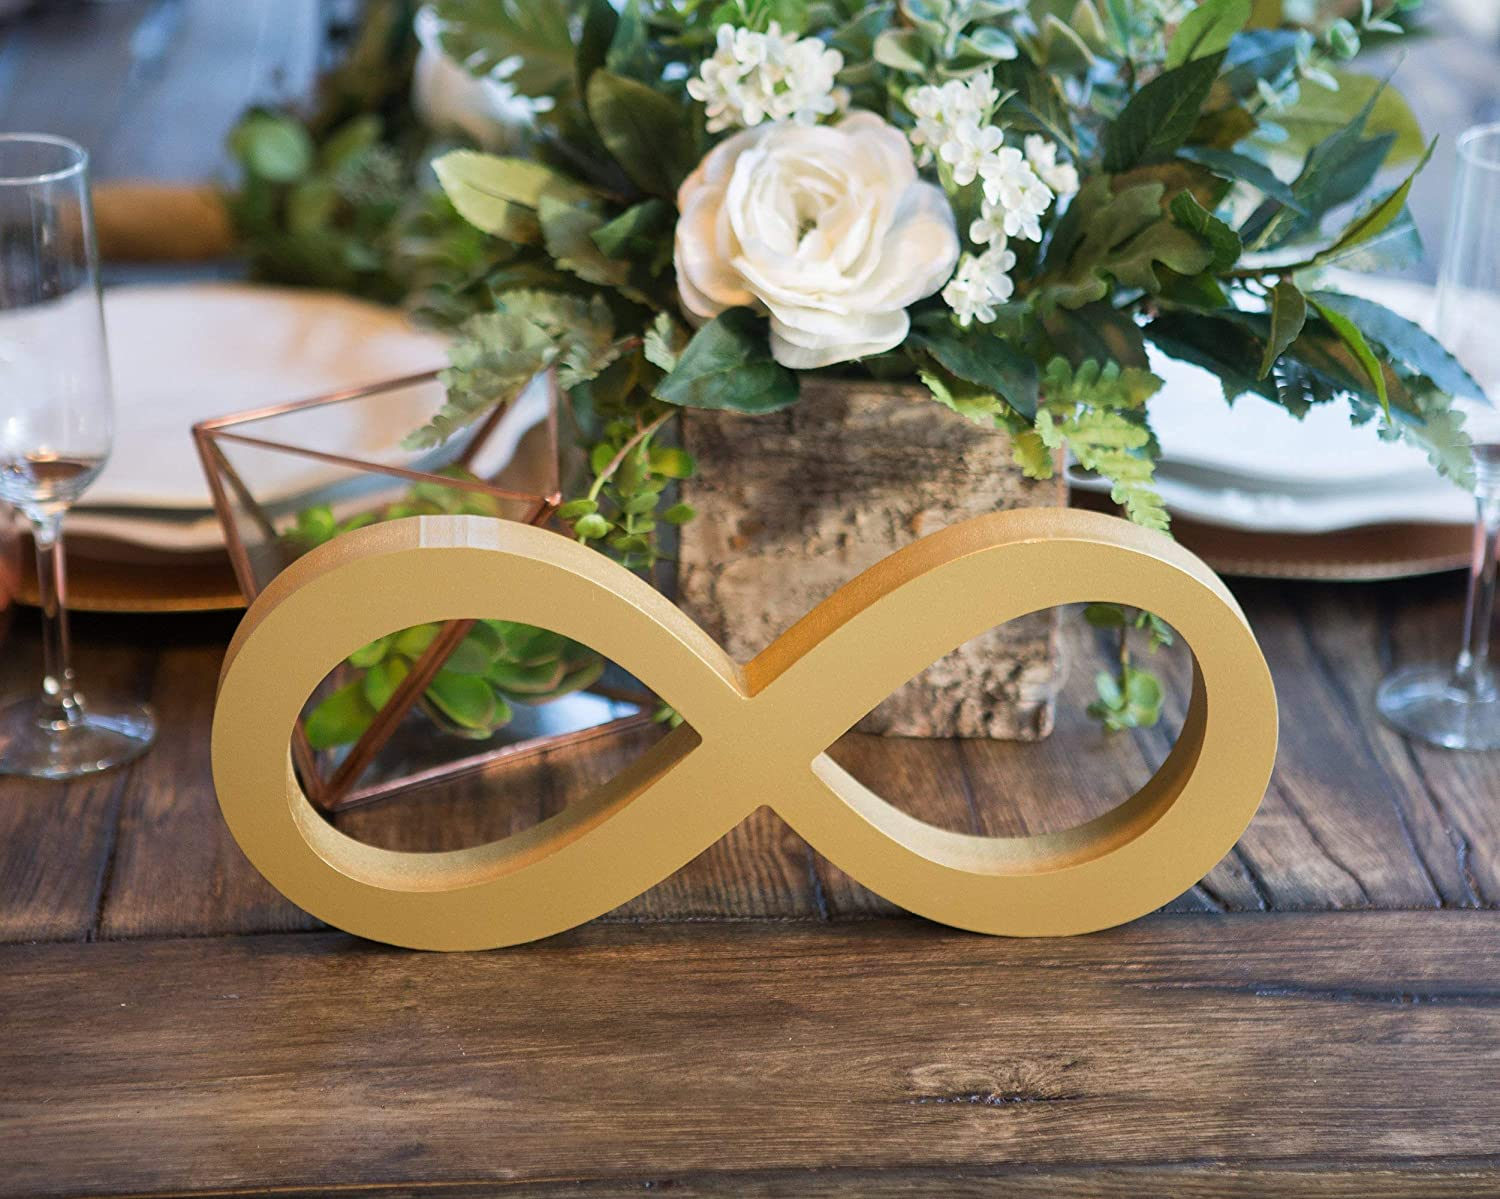 Infinity Table Sign for Wedding Sweetheart Decor Freestanding Thick Infinity Symbol Sign for Reception Centerpiece Decor